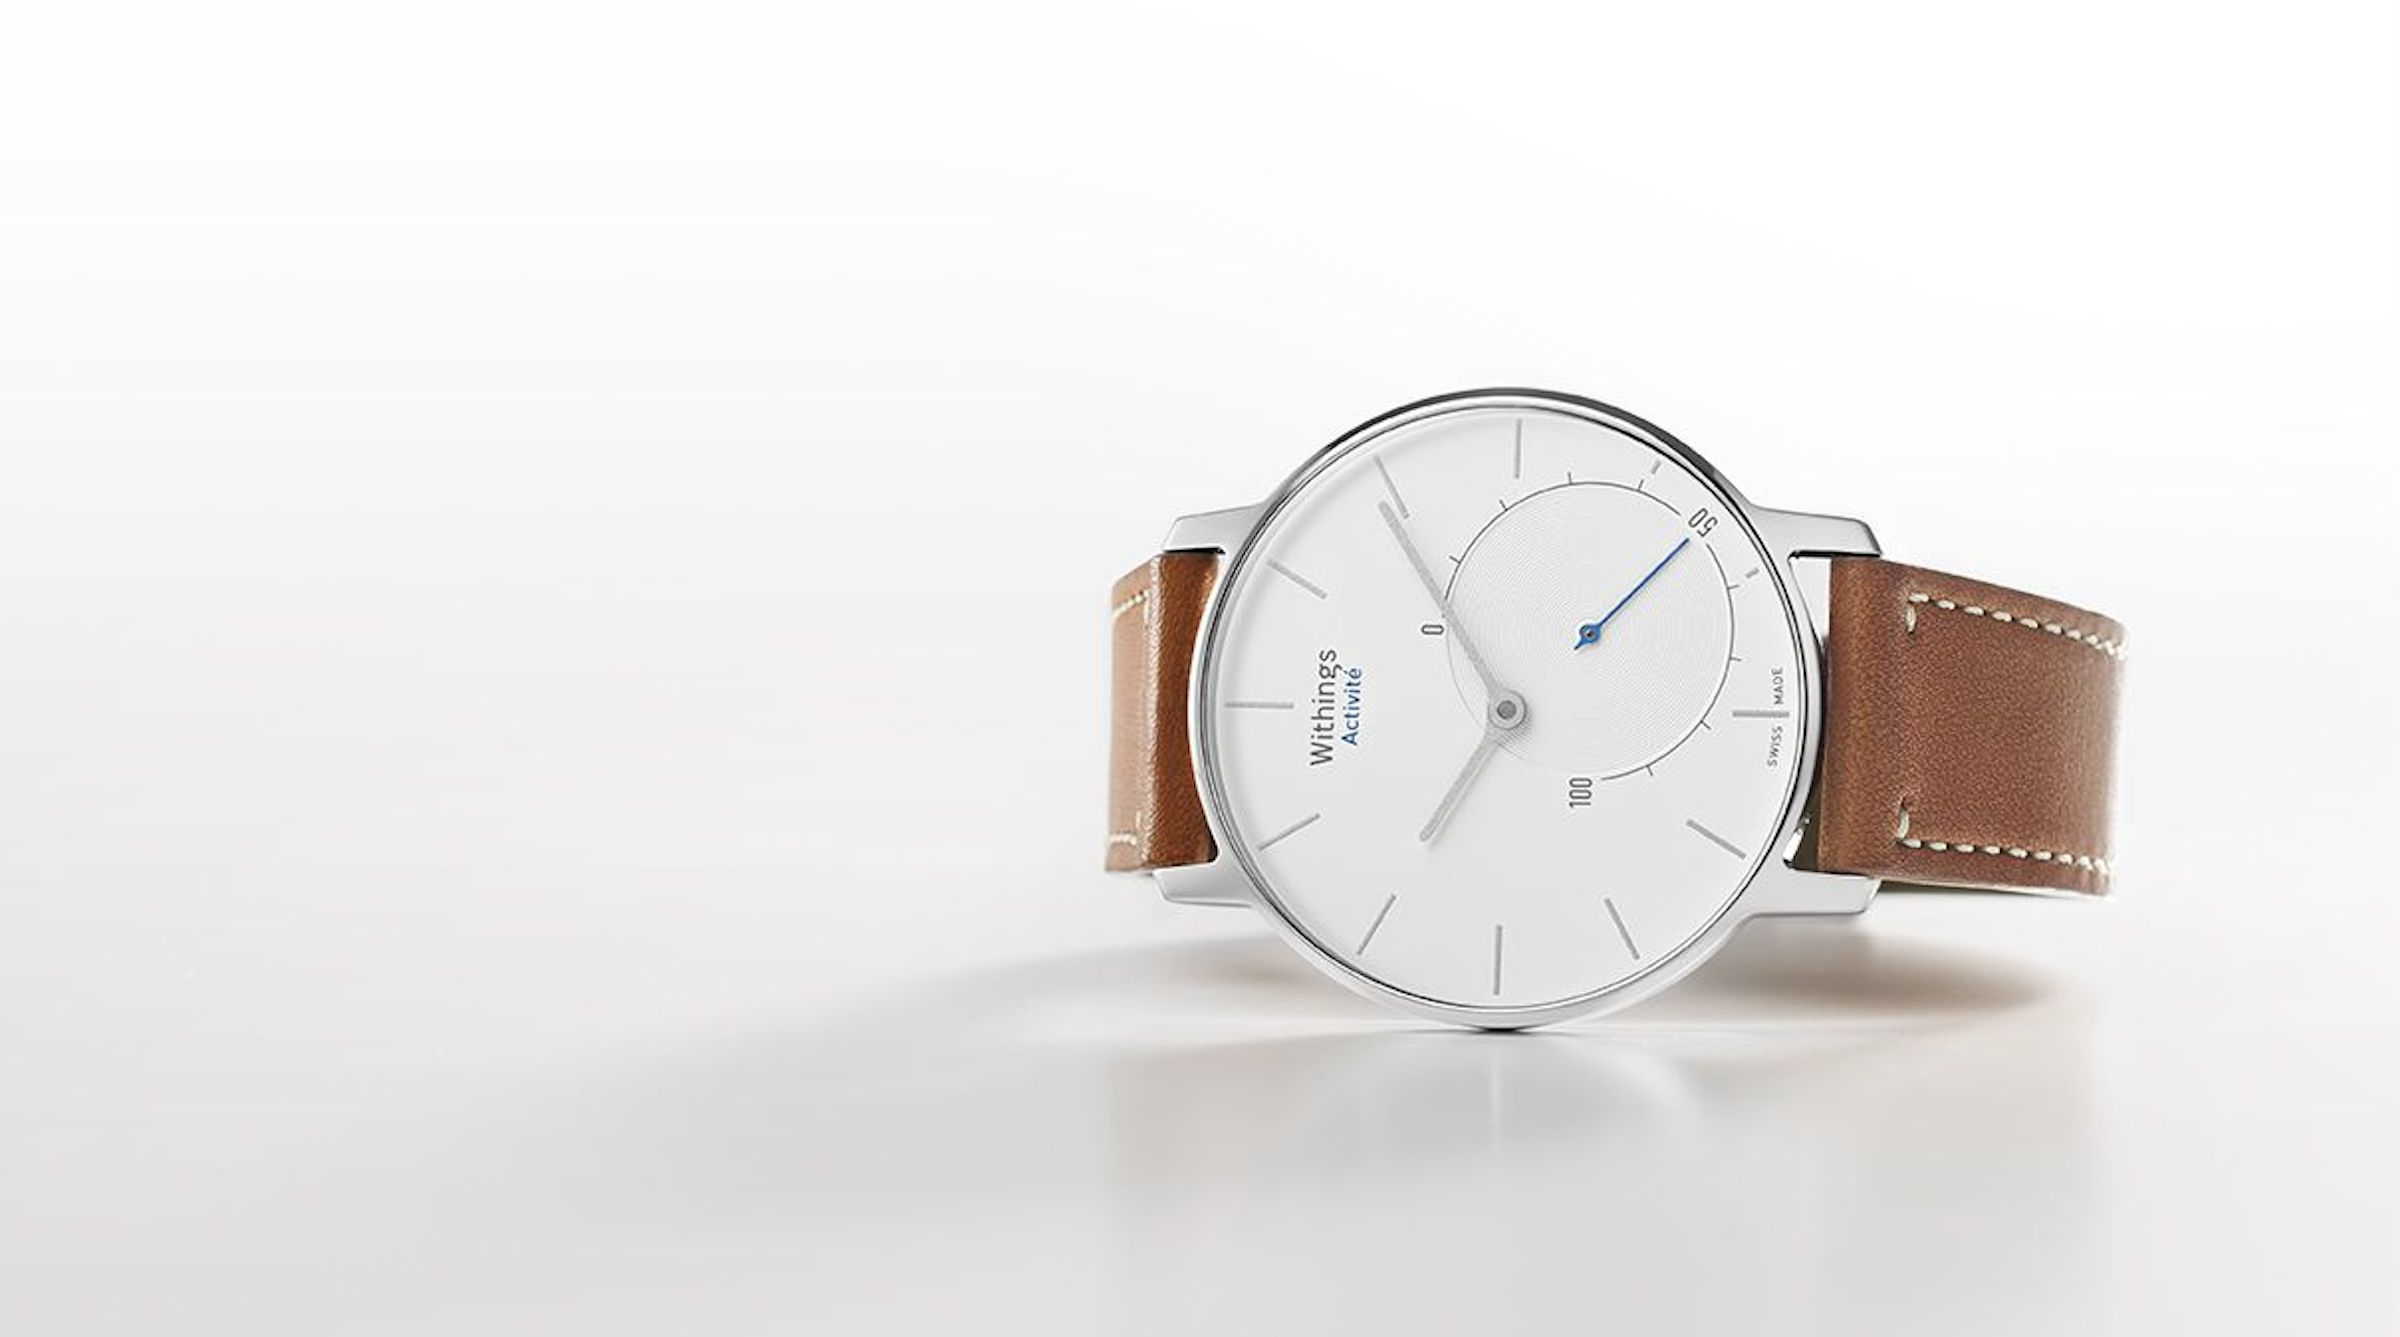 Withings Activité silver smartwatch